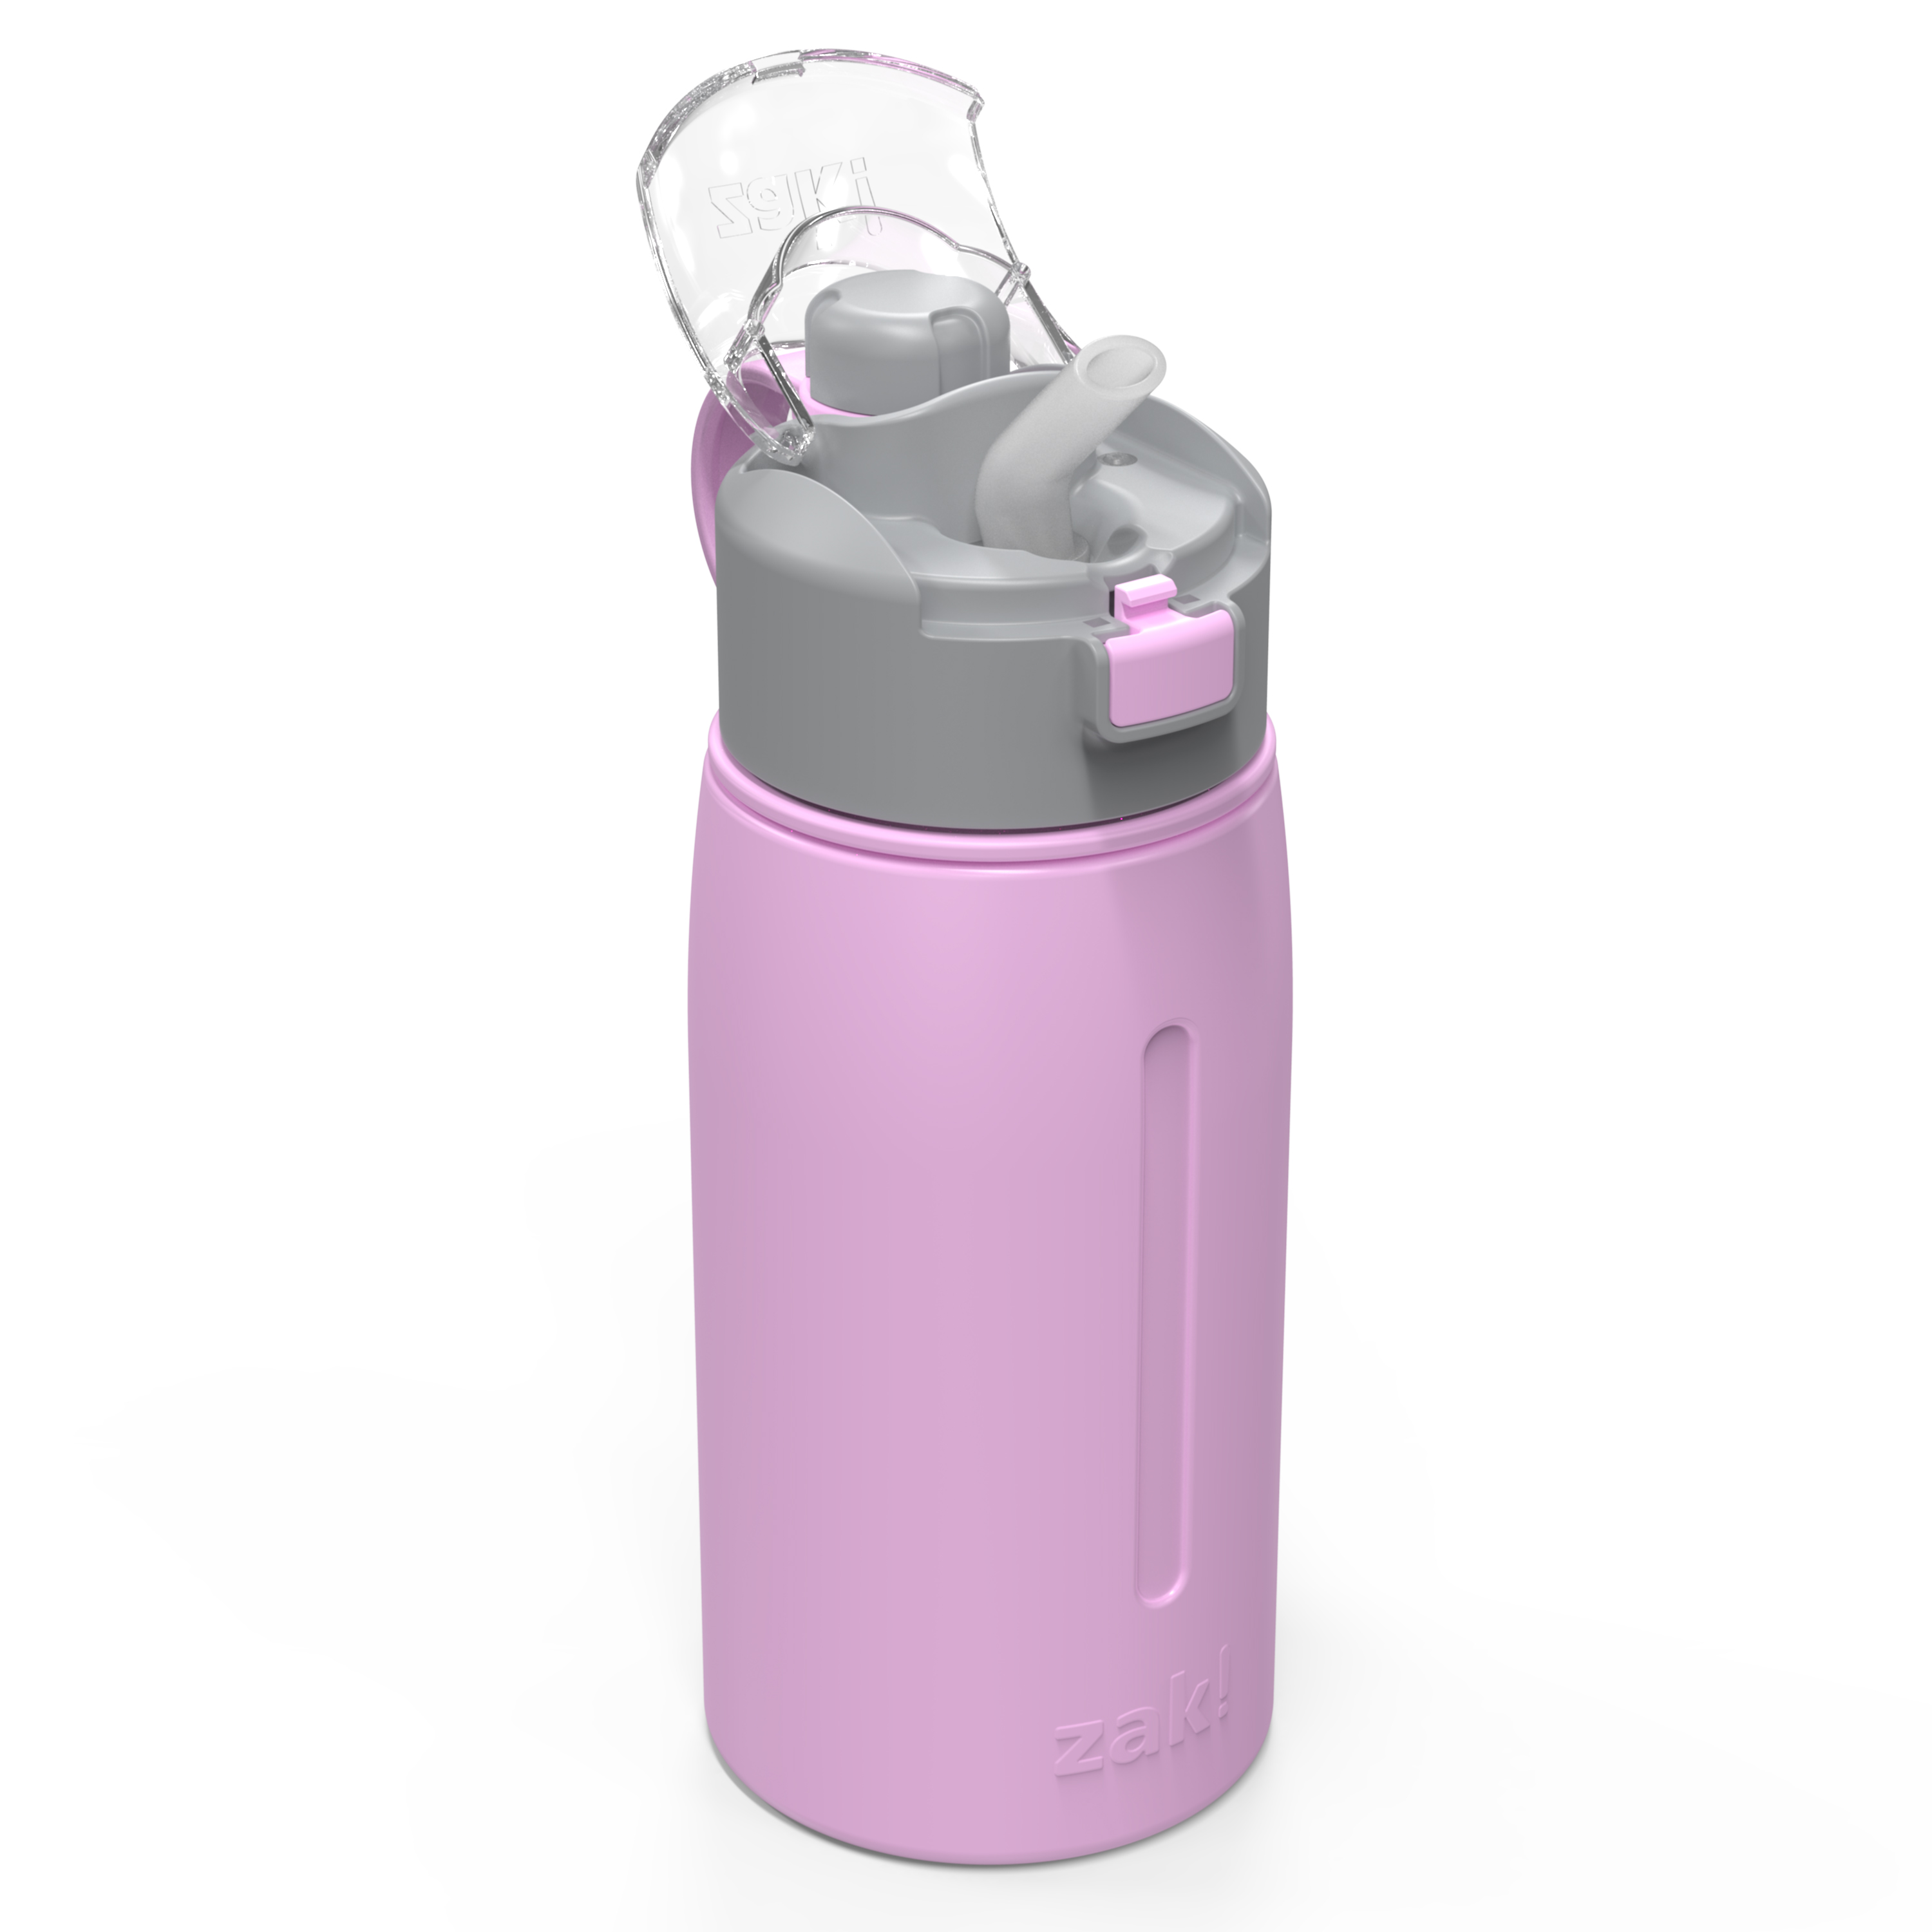 Genesis 18 ounce Vacuum Insulated Stainless Steel Tumbler, Lilac slideshow image 3